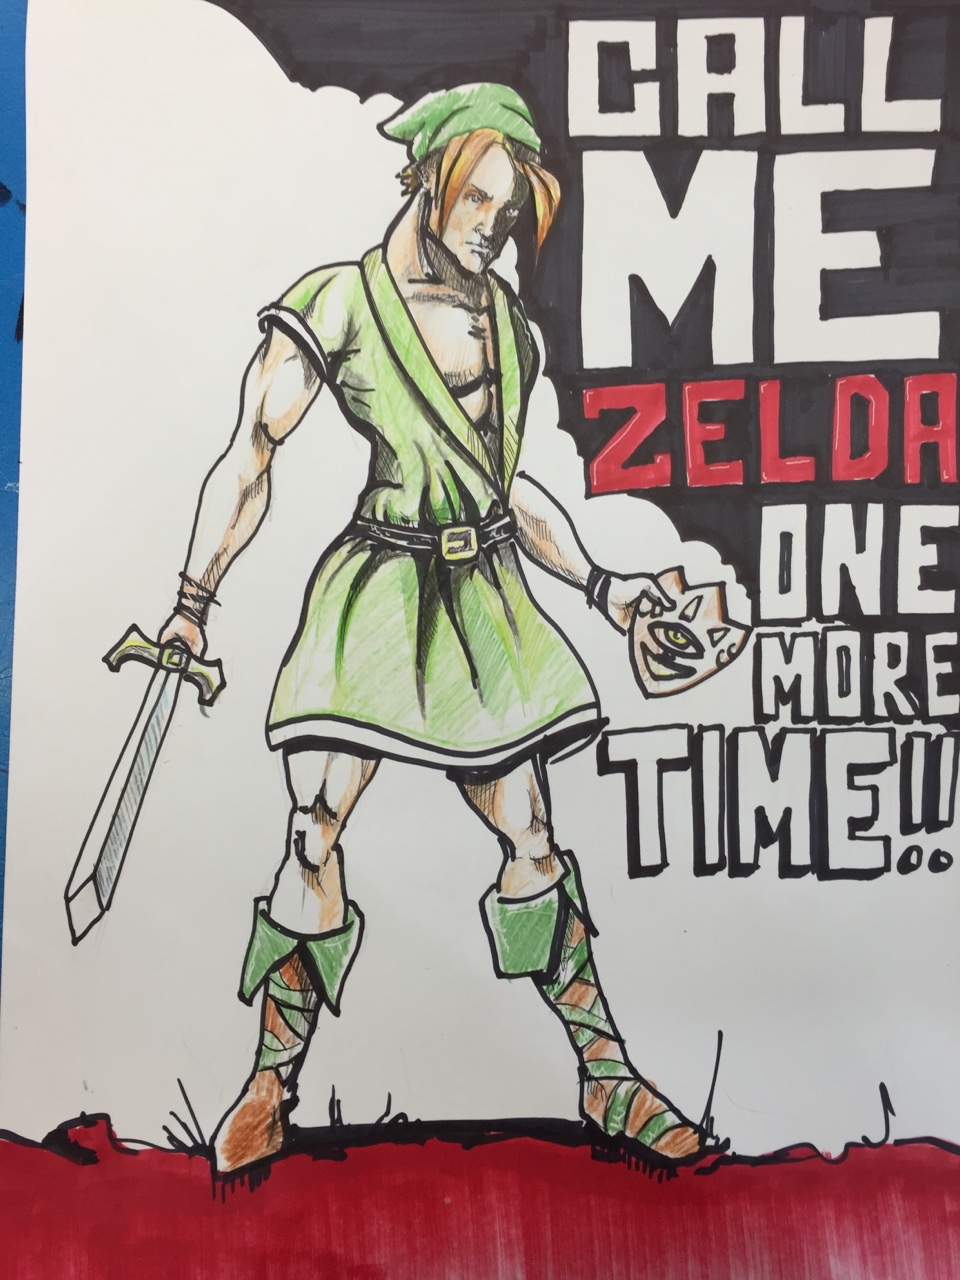 Figured Link needed to be jacked up a bit. Lol.